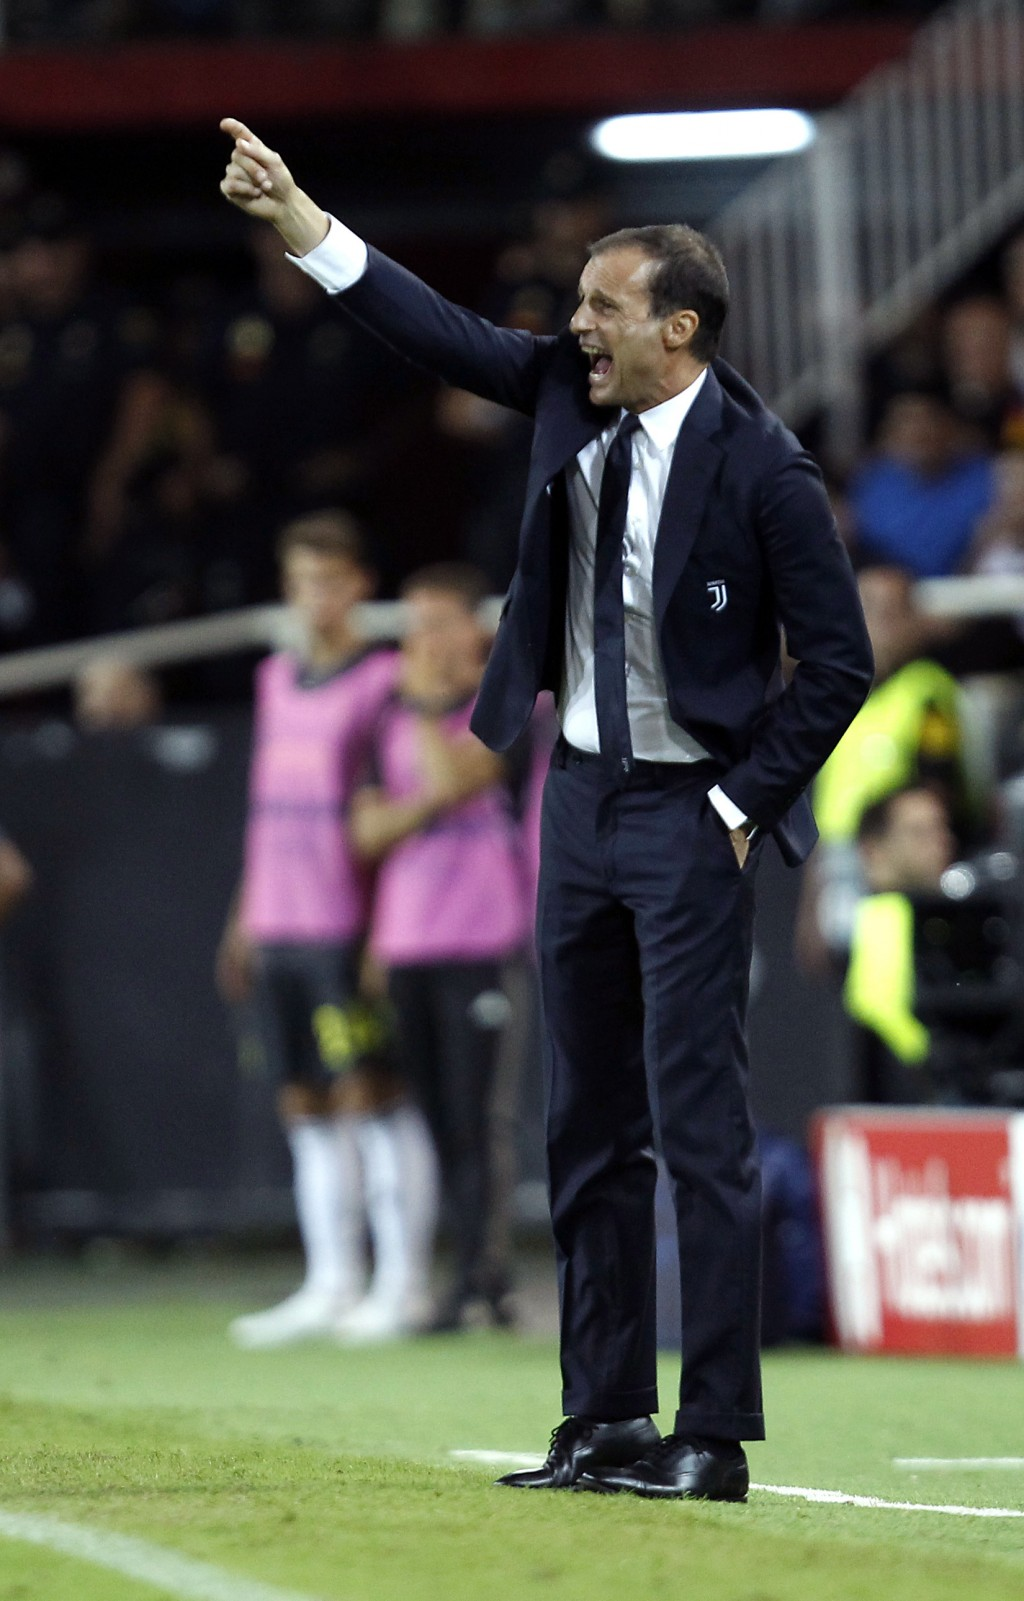 Juventus coach Massimiliano Allegri shouts during the Champions League, group H soccer match between Valencia and Juventus, at the Mestalla stadium in